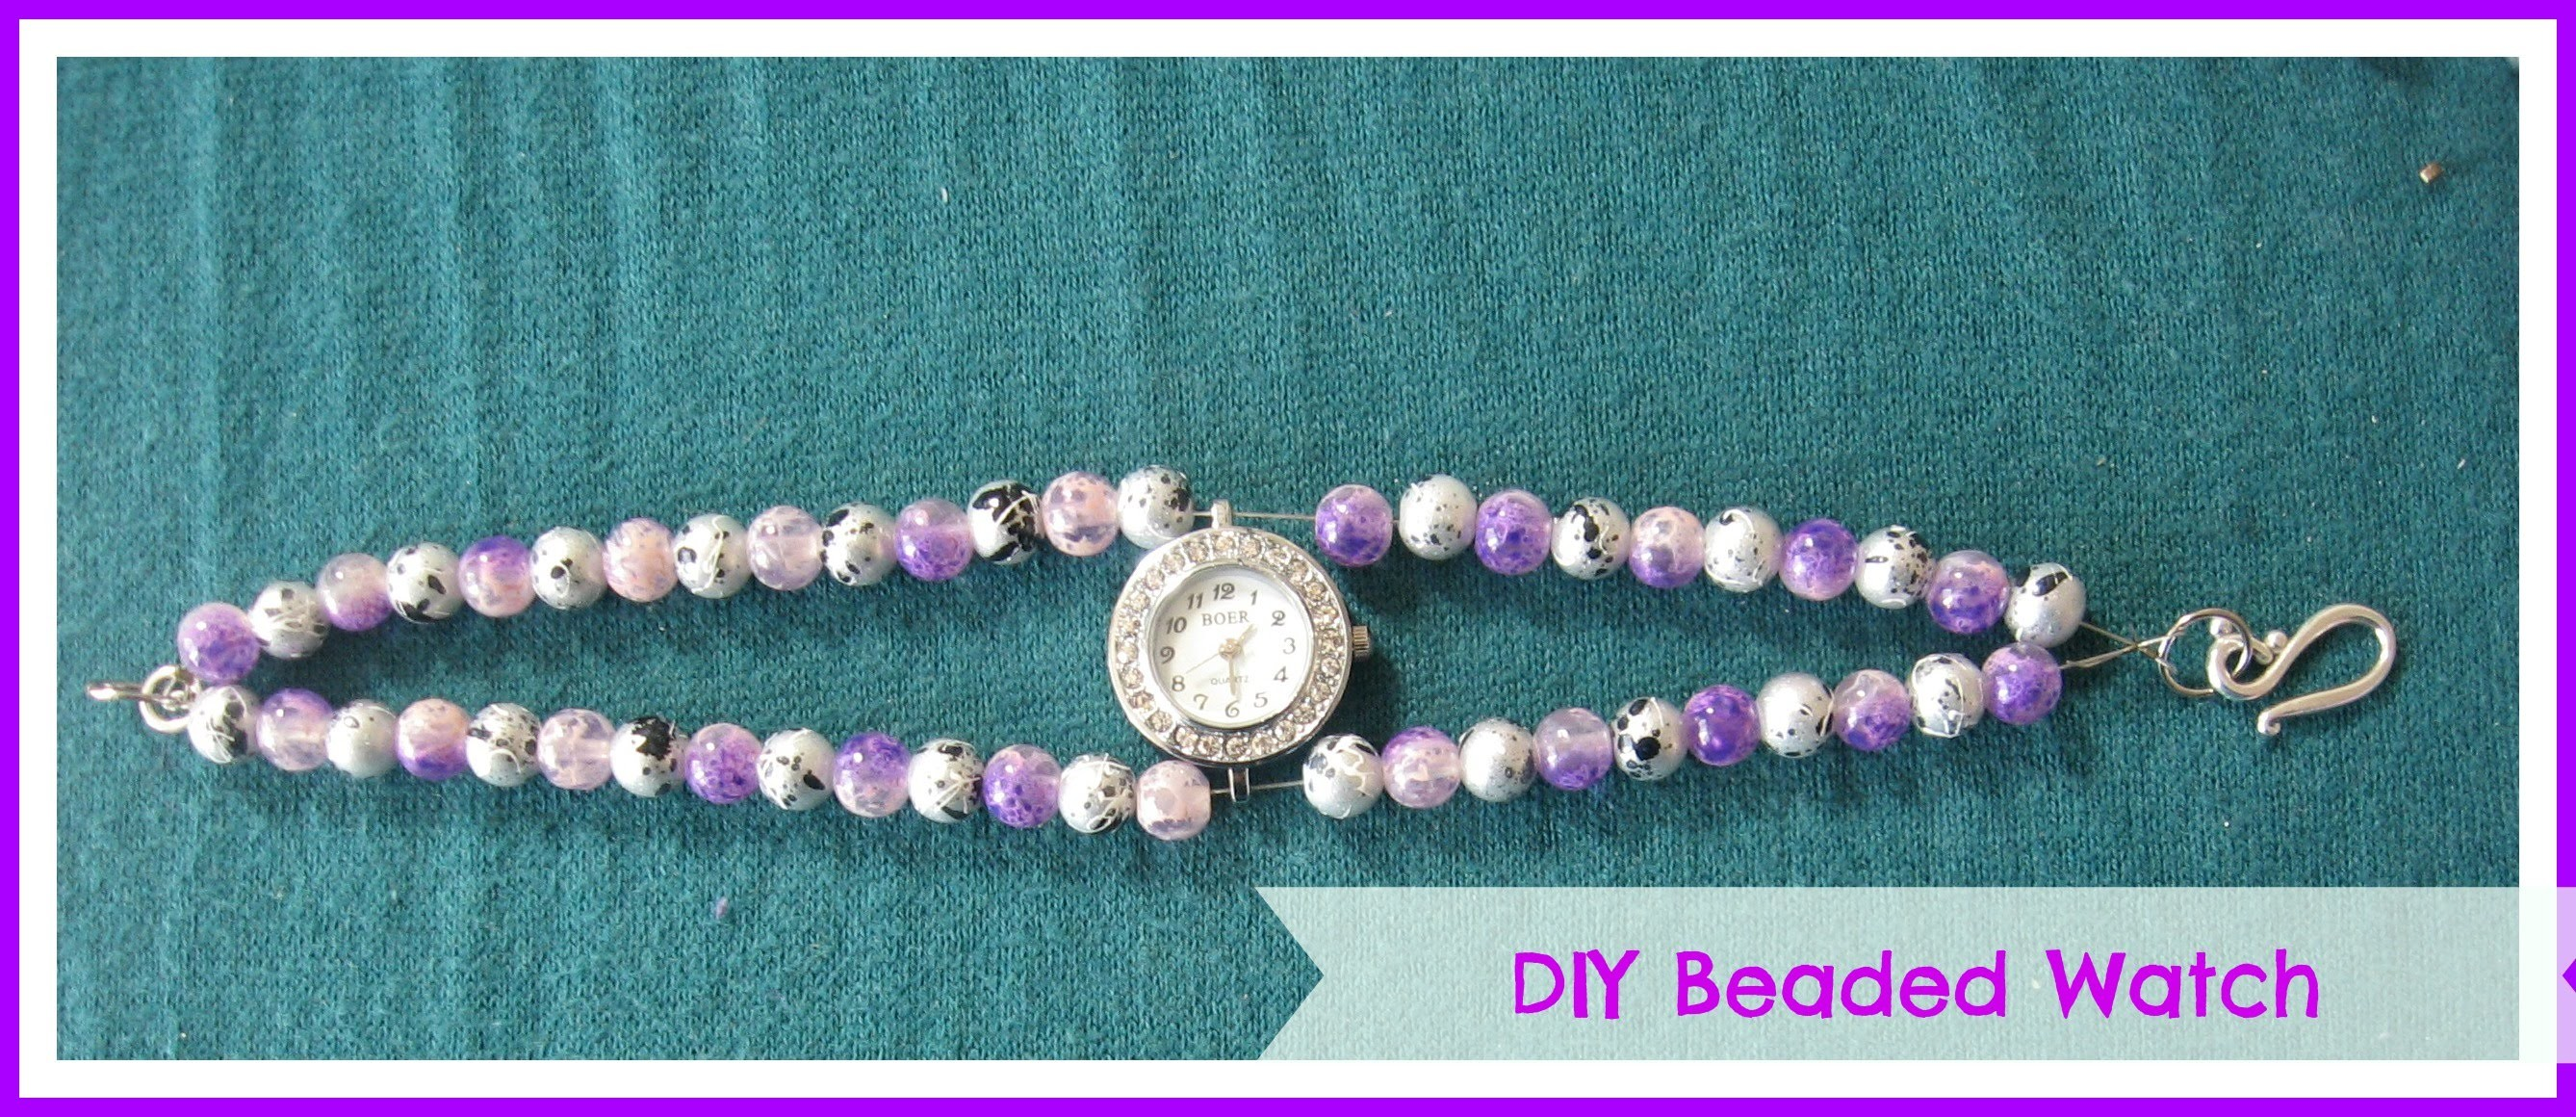 How to make a easy Beaded Watch. DIY Beaded Watch